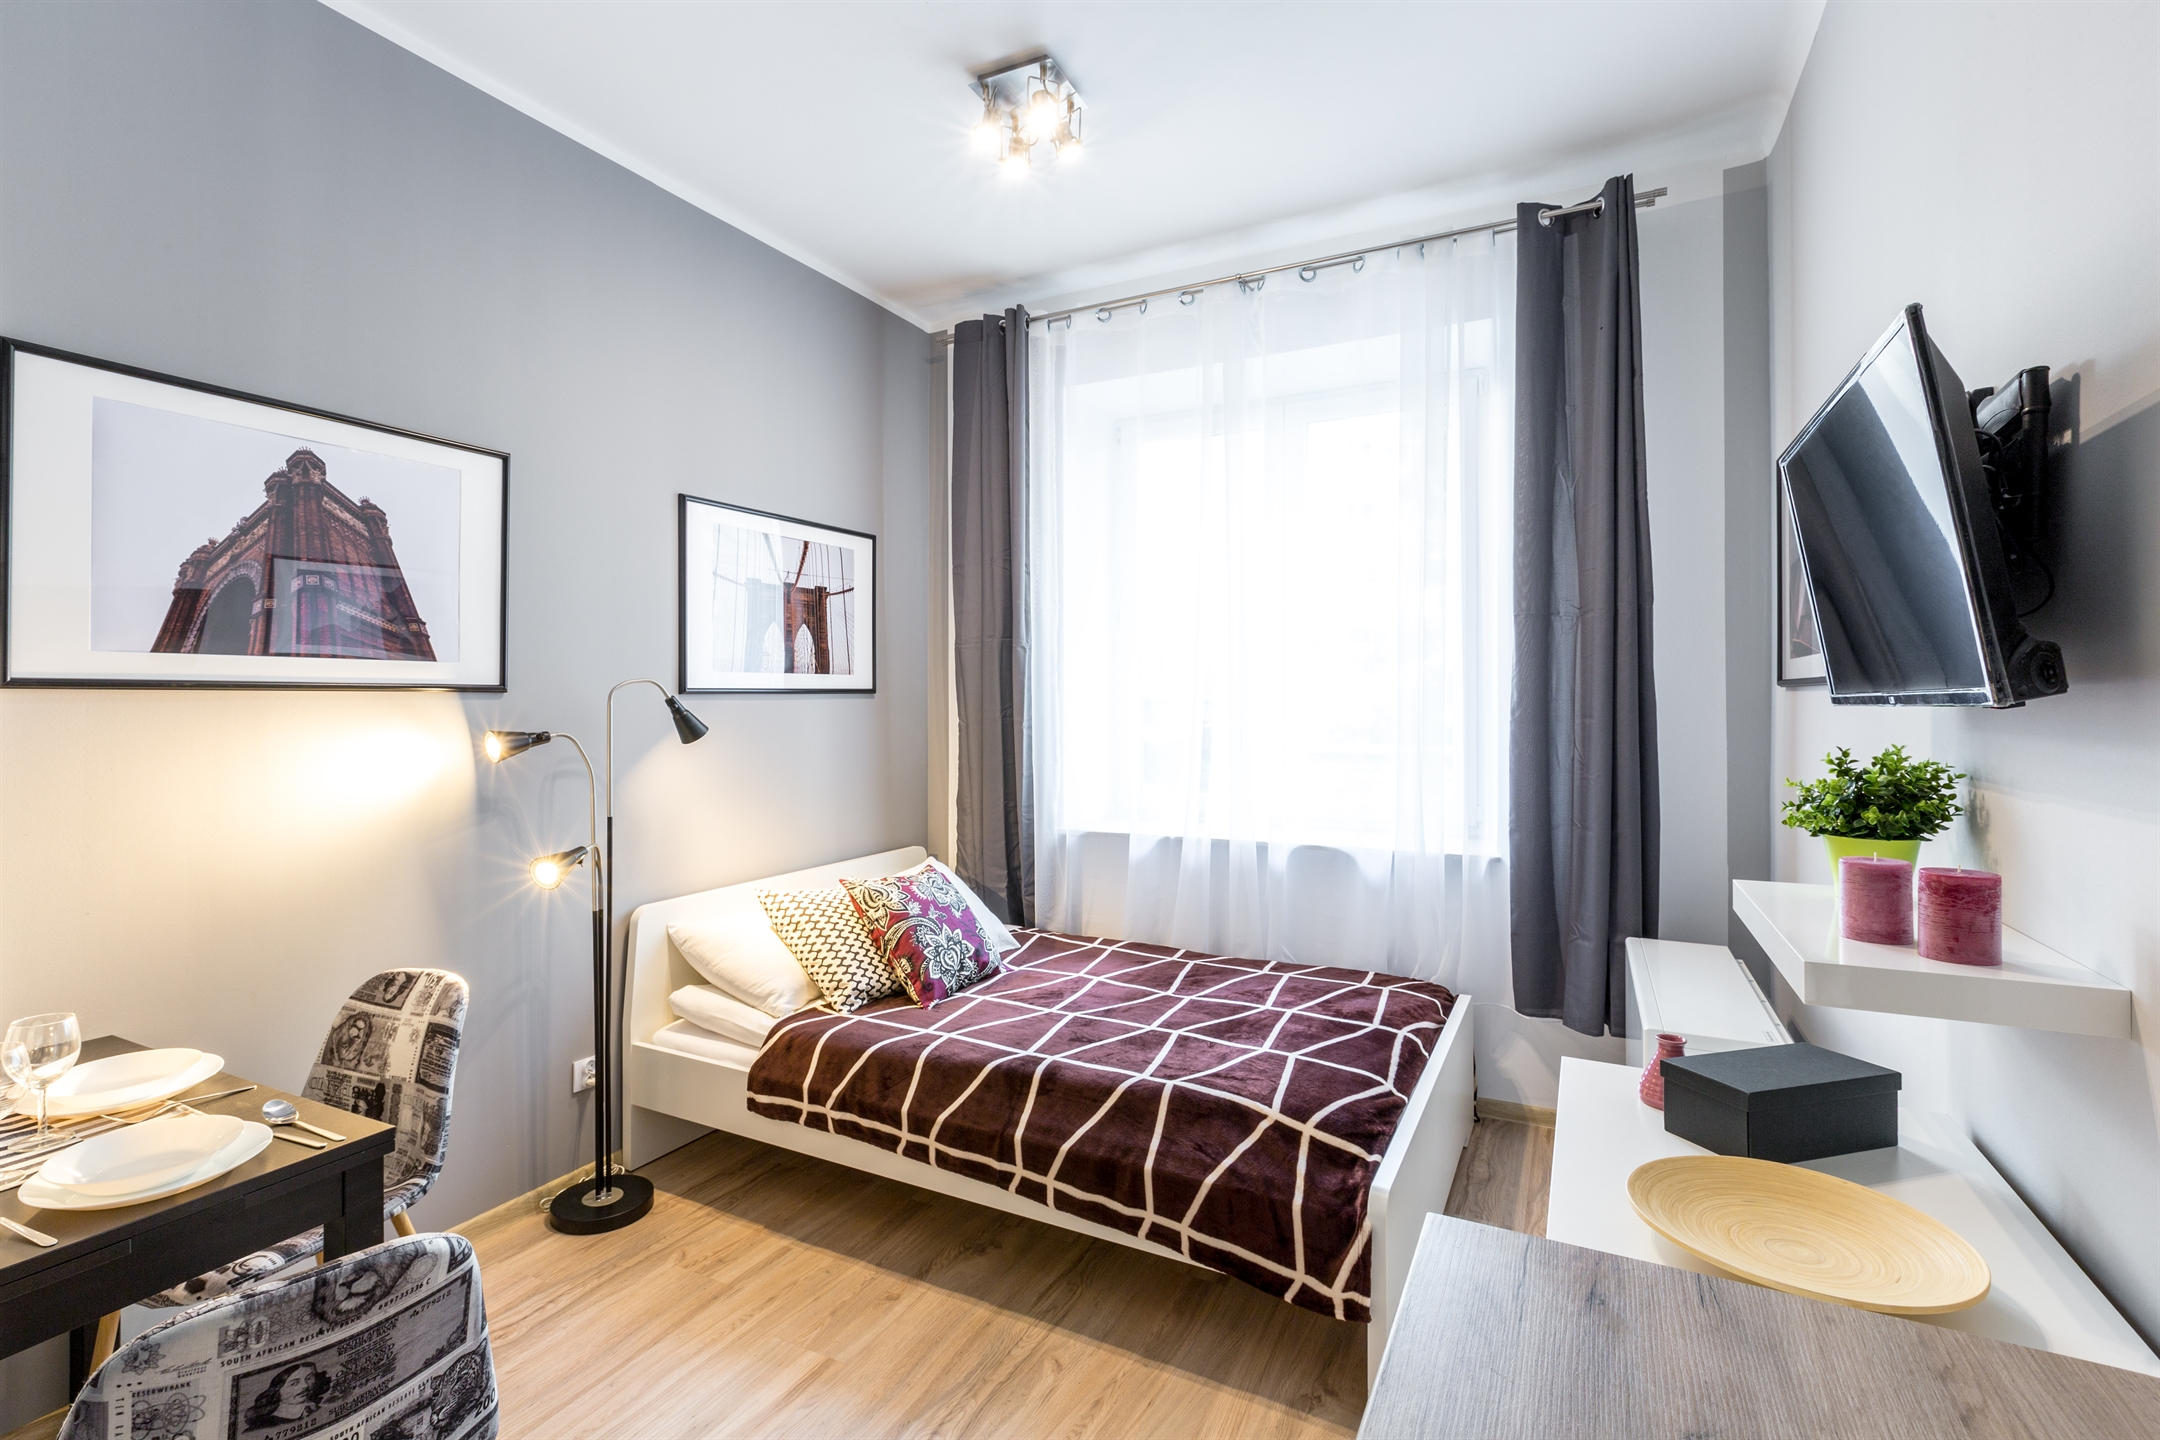 M4 Old Town Apartment